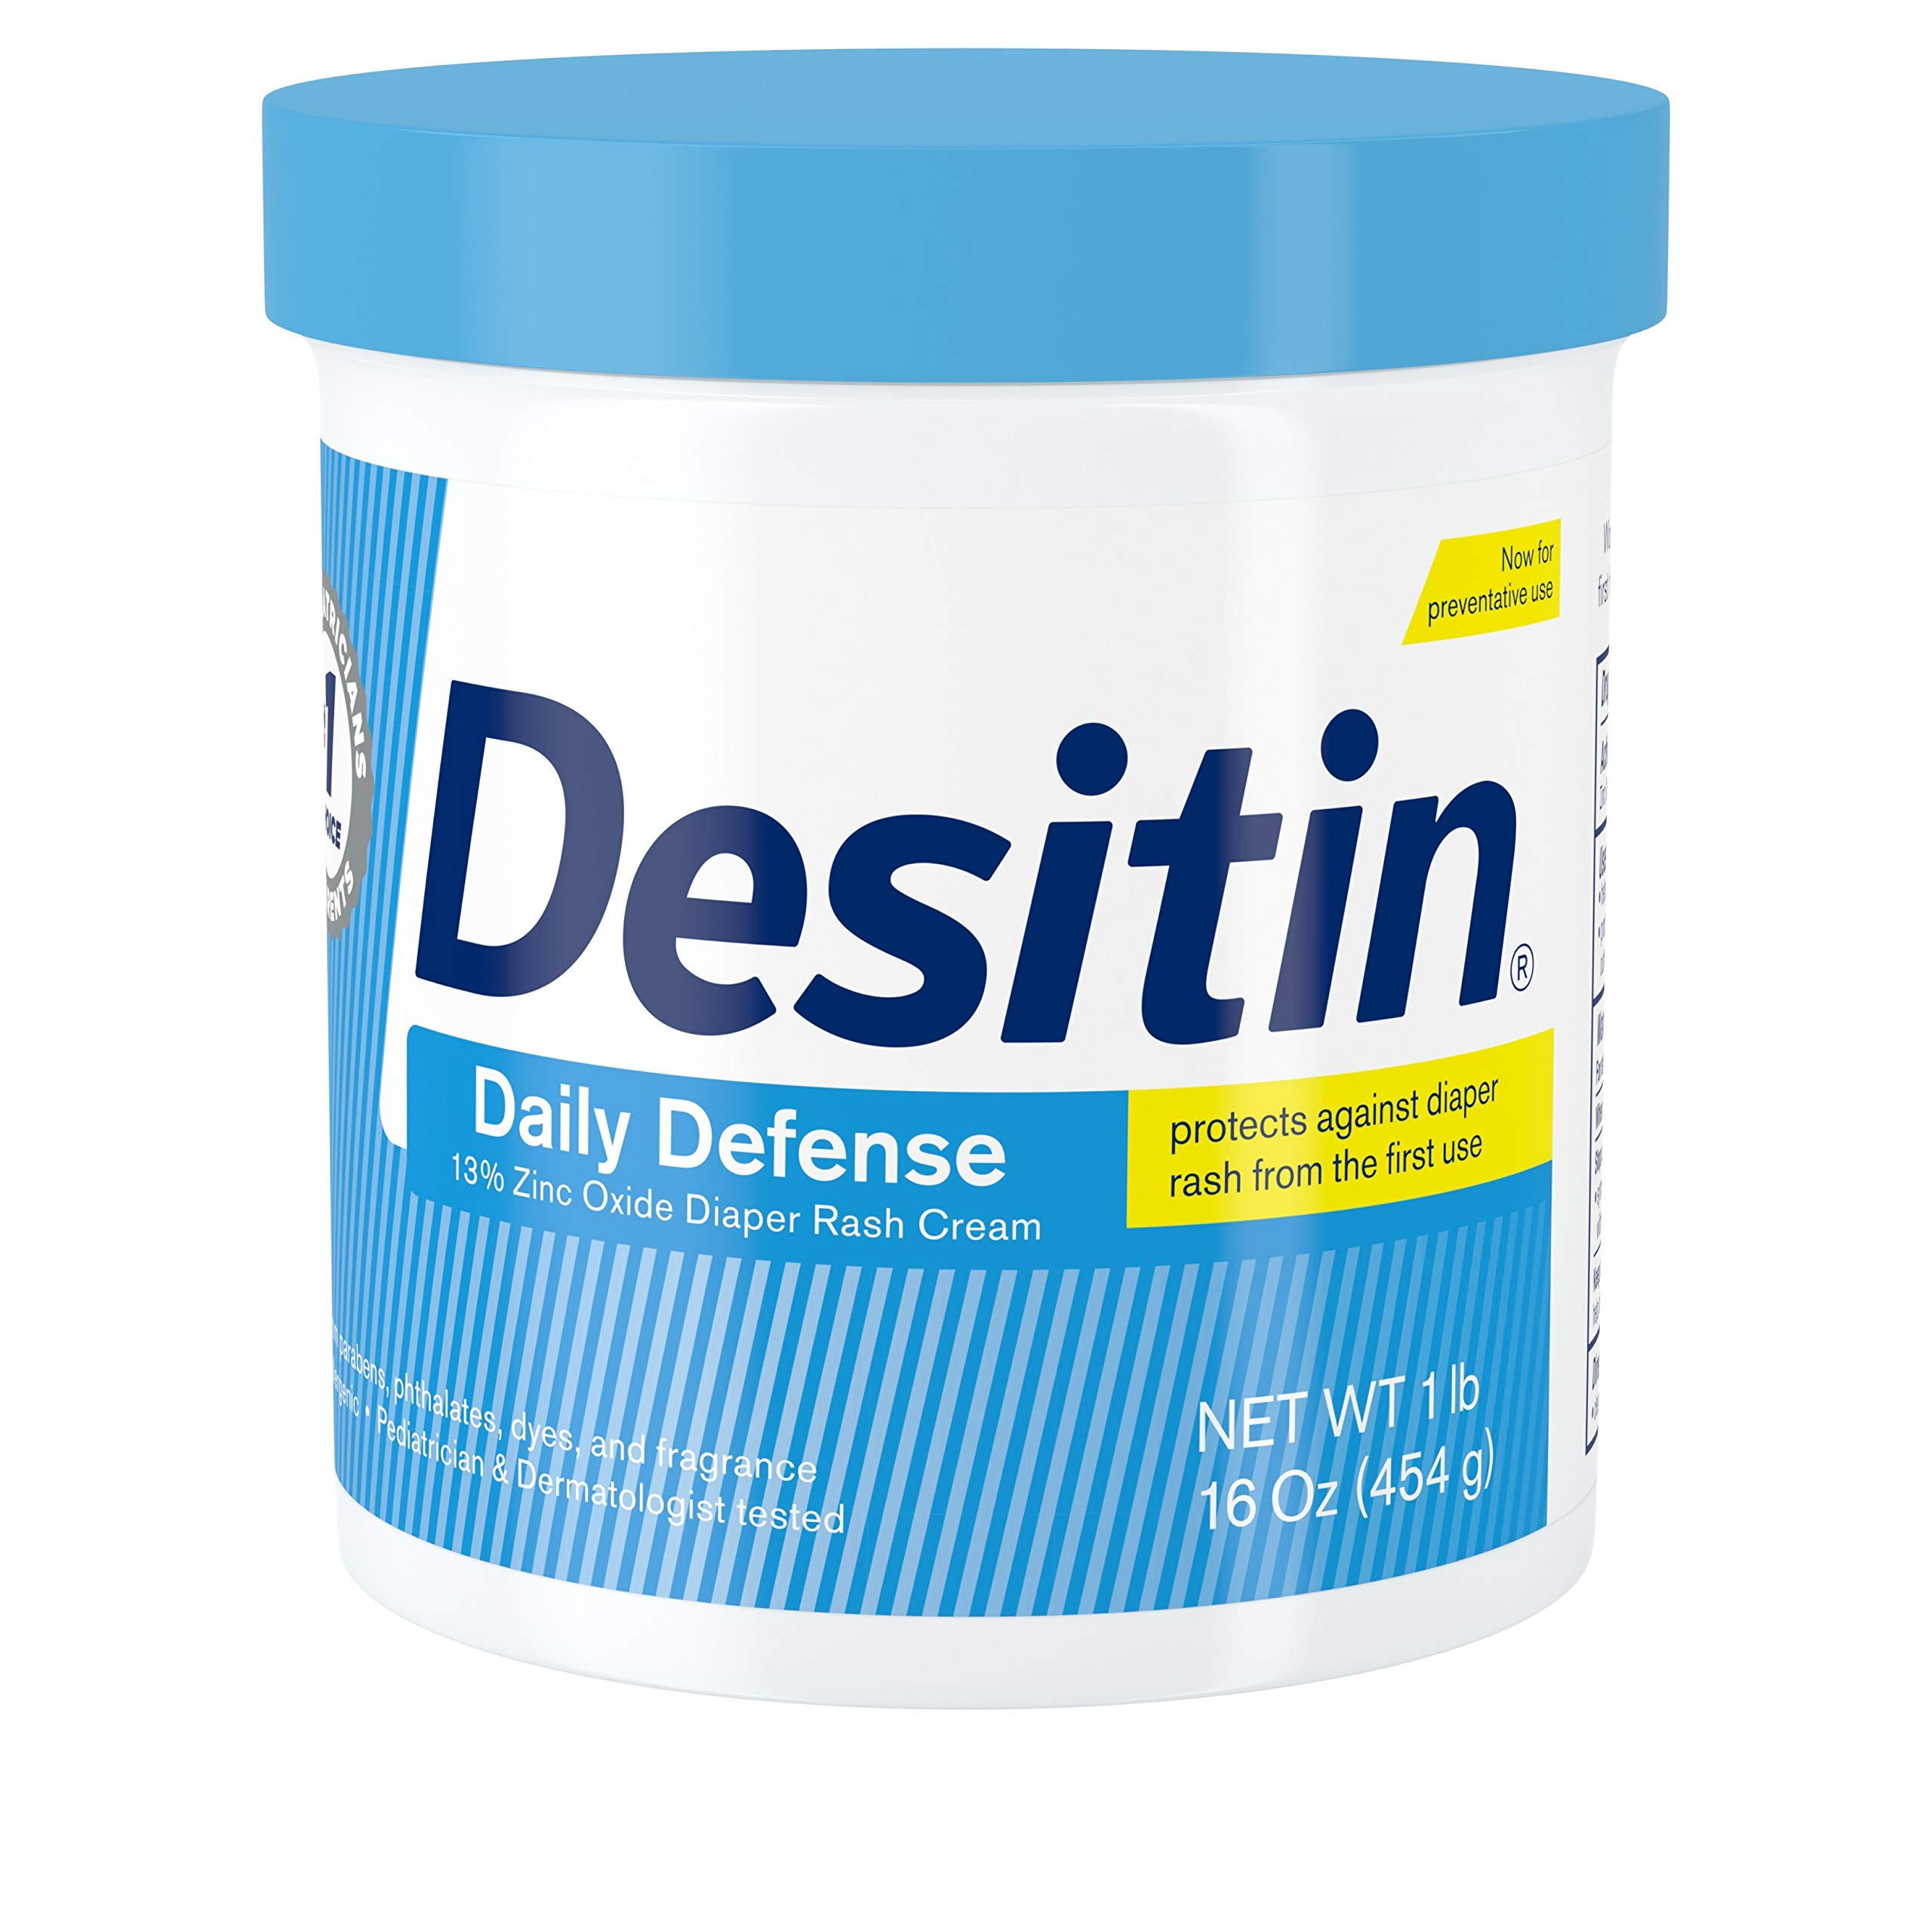 Desitin Daily Defense Baby Diaper Rash Cream with Zinc Oxide to Treat, Relieve & Prevent diaper rash, 16 oz